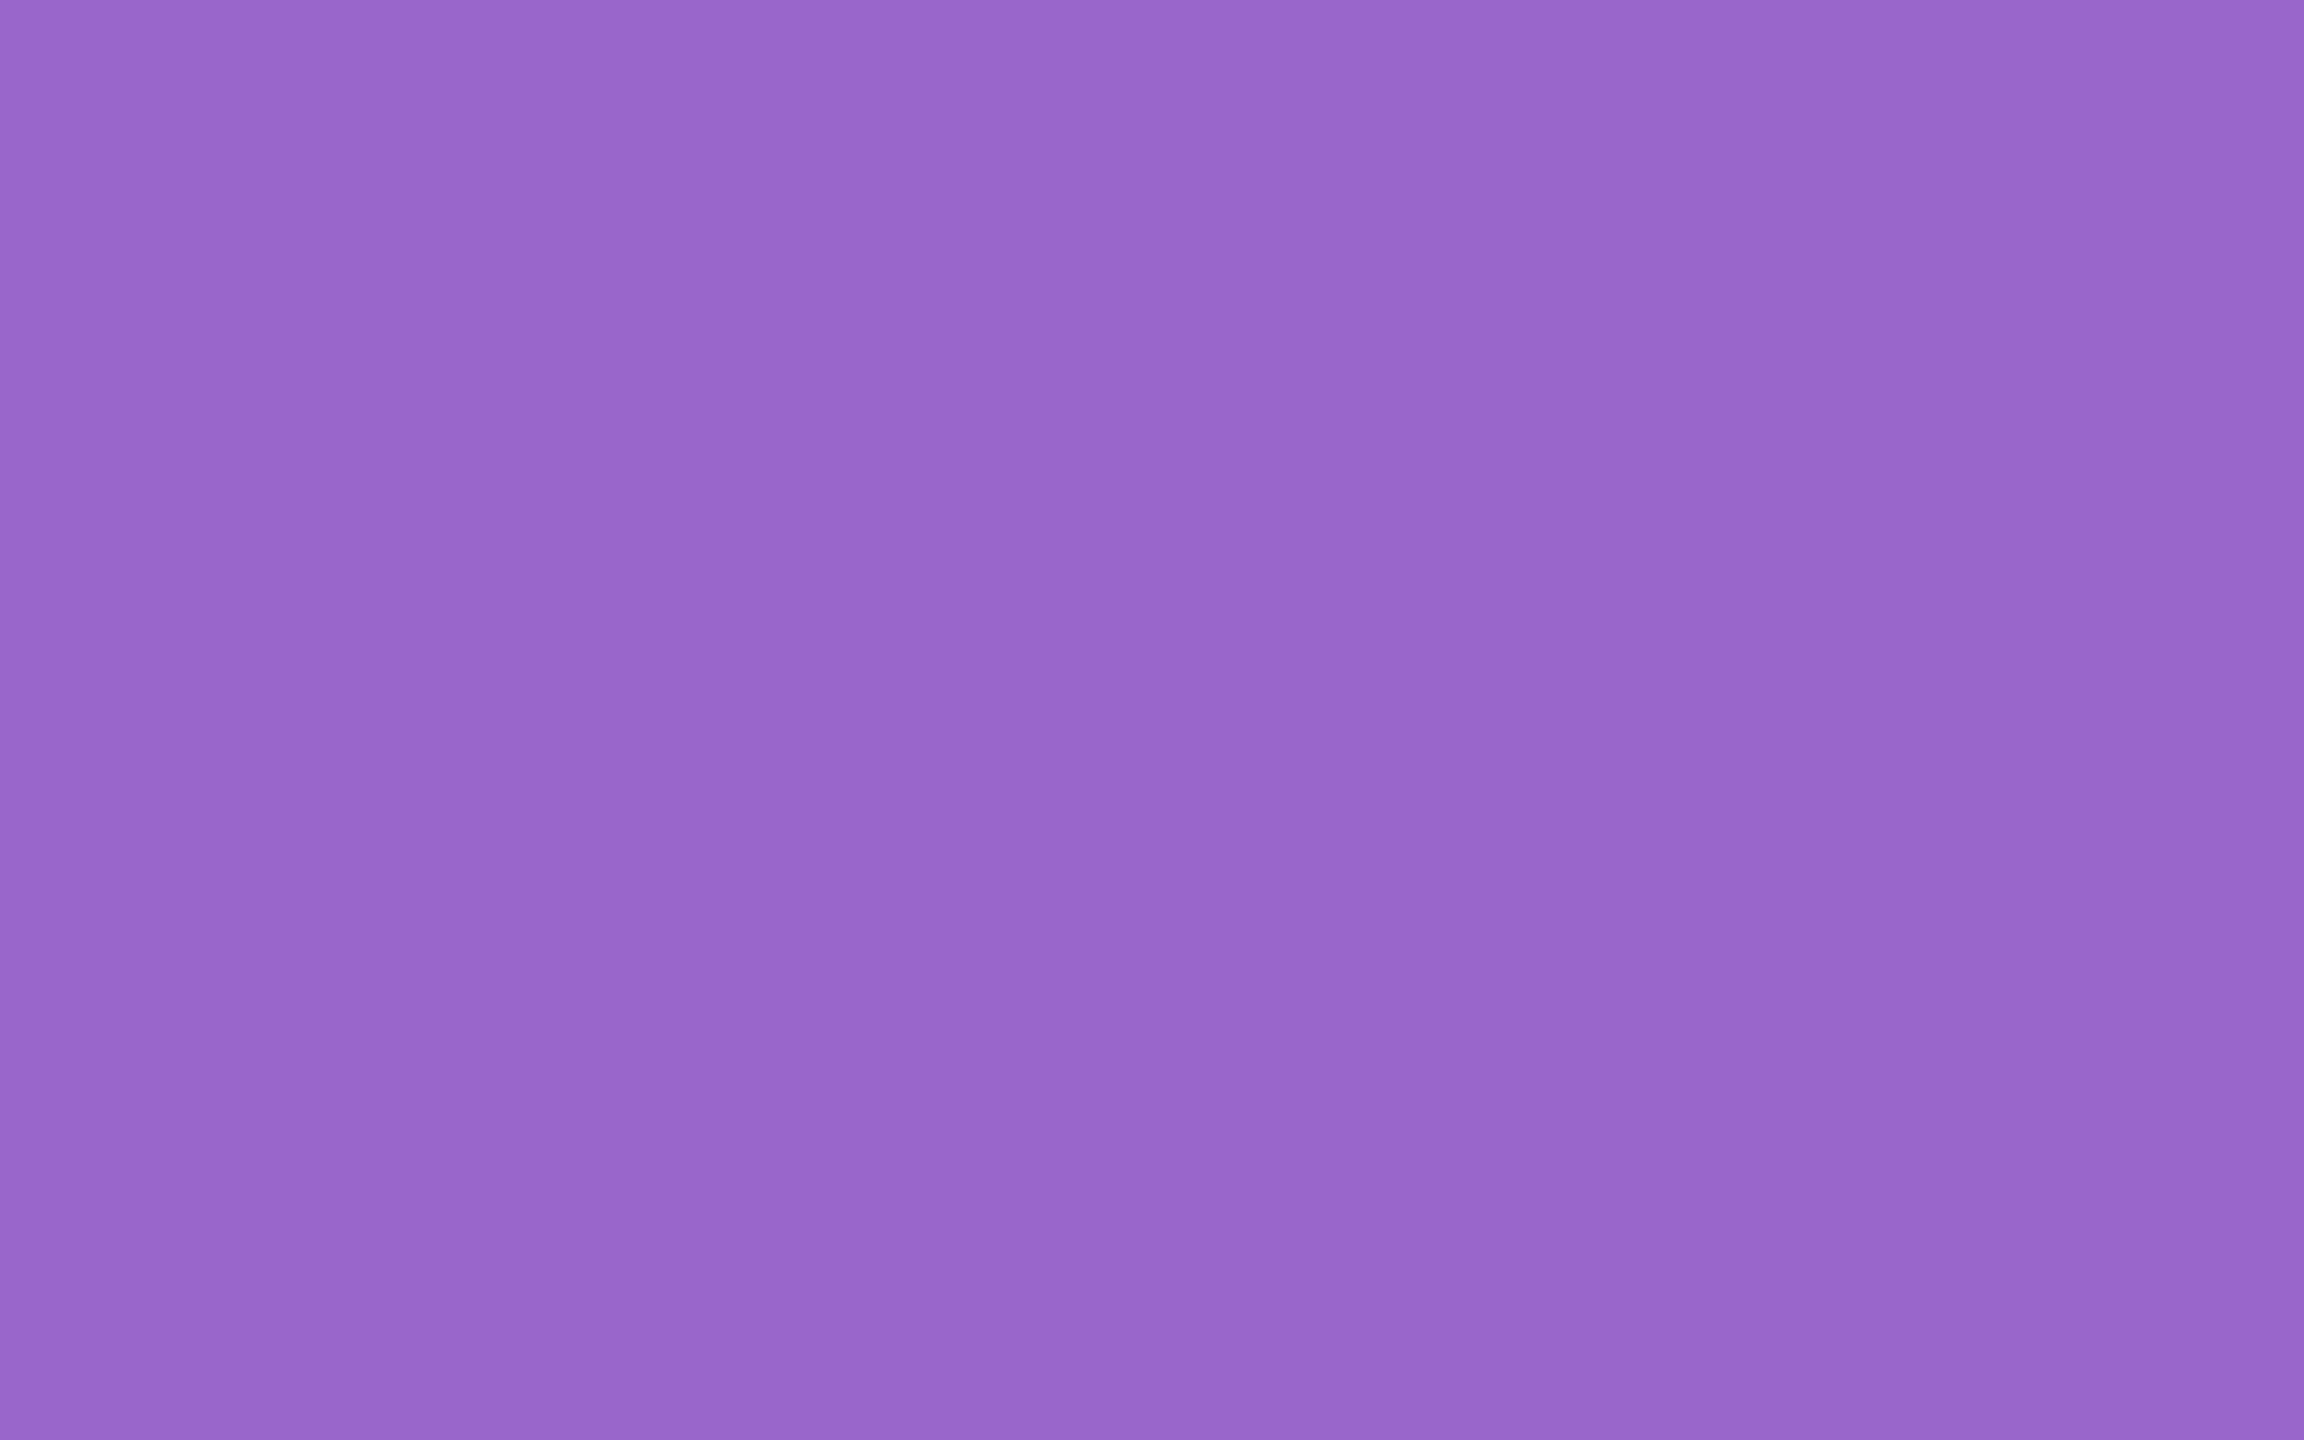 2304x1440 Amethyst Solid Color Background